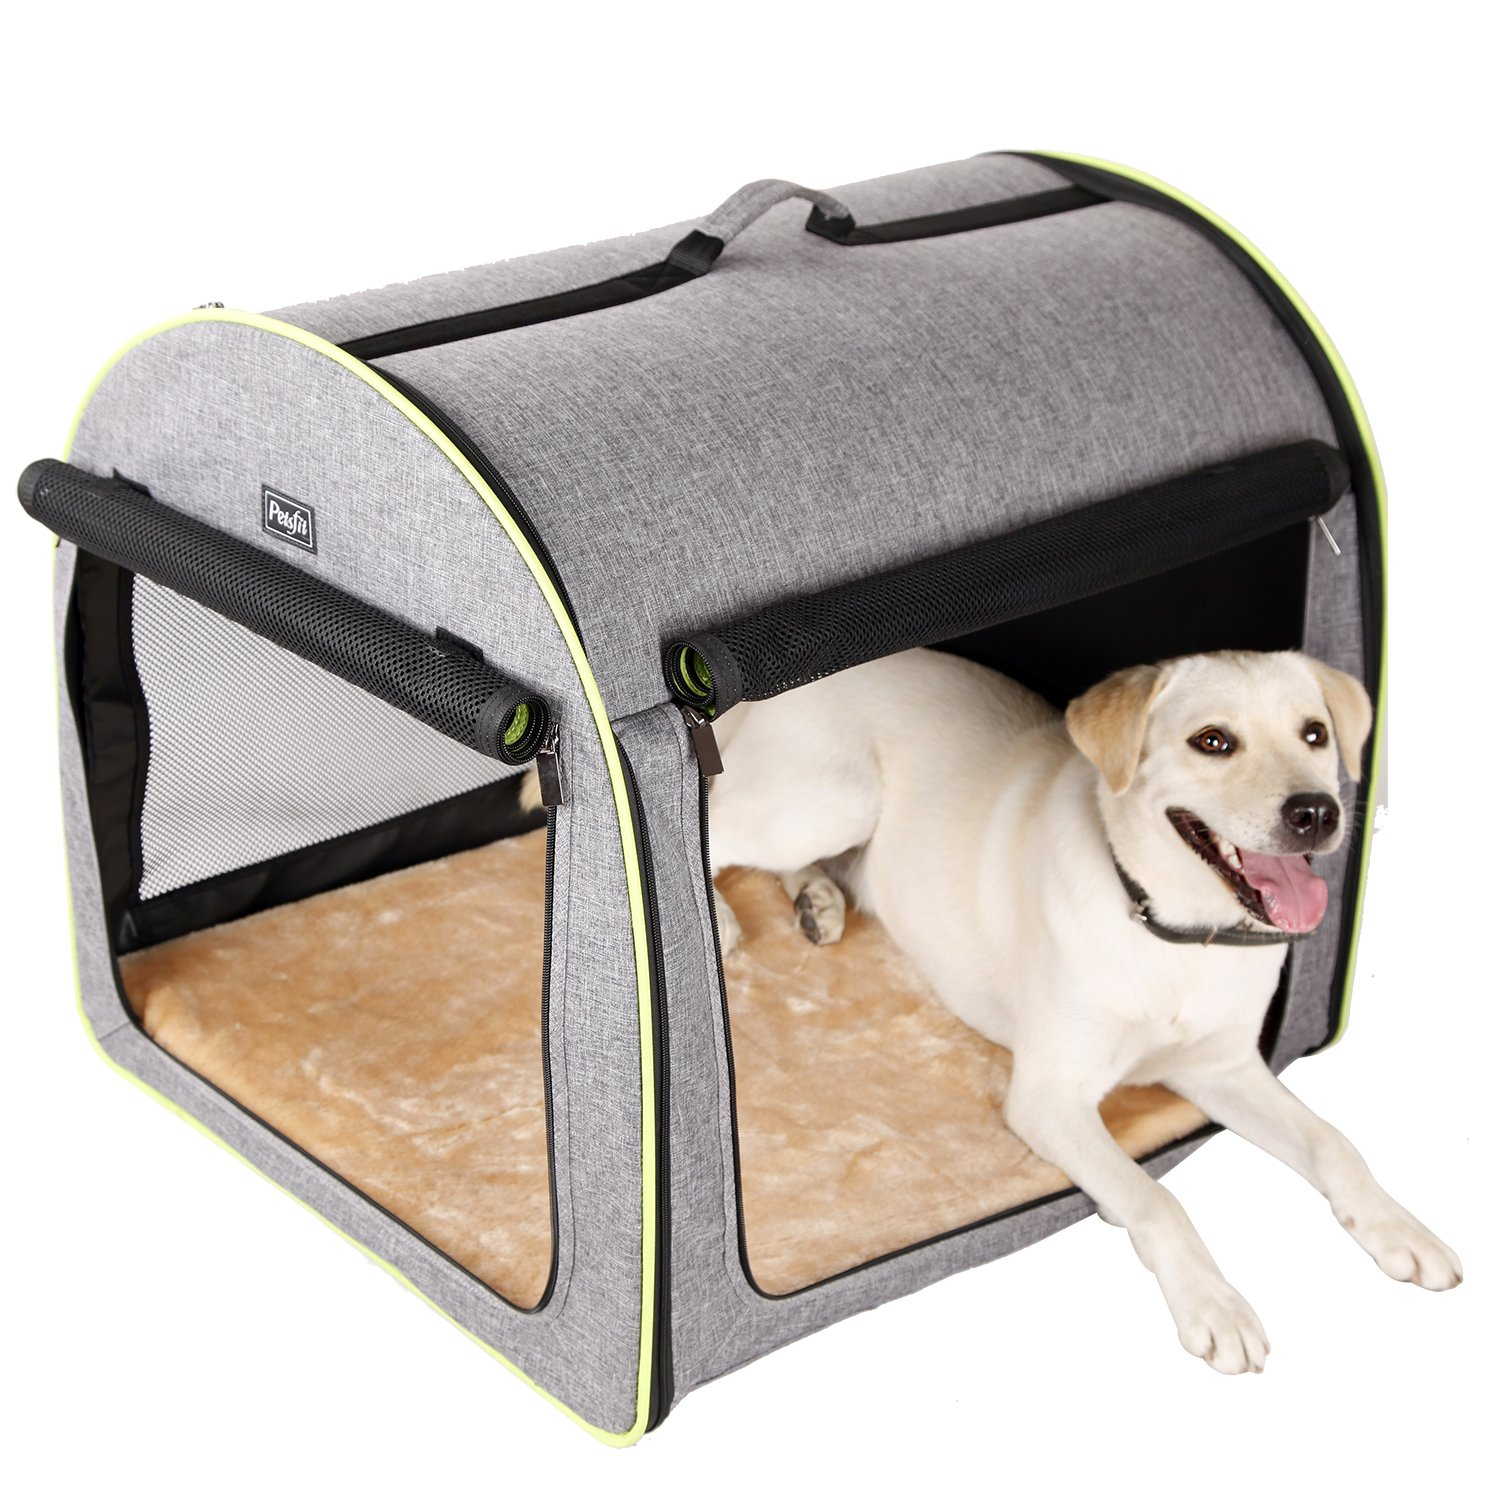 Amazon Com Petsfit 30 X24 X25 Lxwxh Inches Medium Soft Portable Dog Crate Cat Crate Foldable Pet Kennel Indoor Outdoor Pet Home For Medium Dogs Pet Supplies